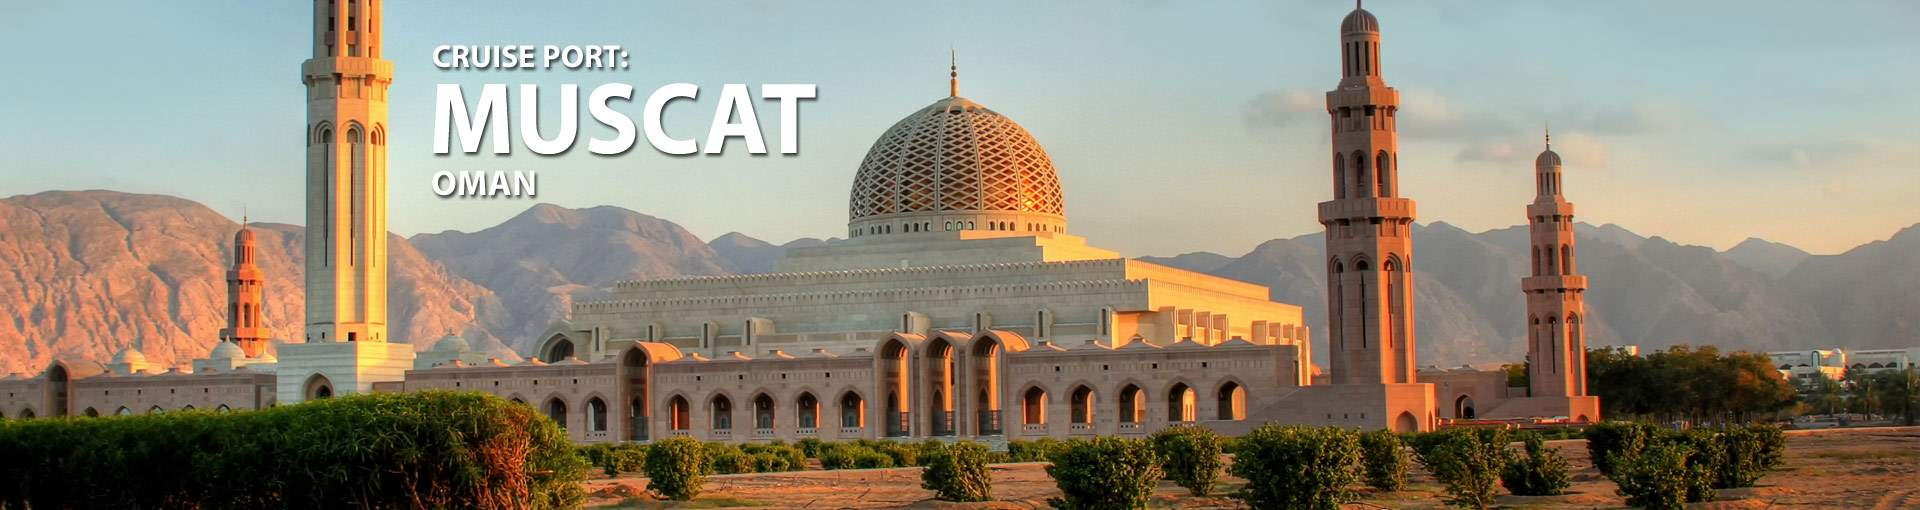 Cruises from Muscat, Oman